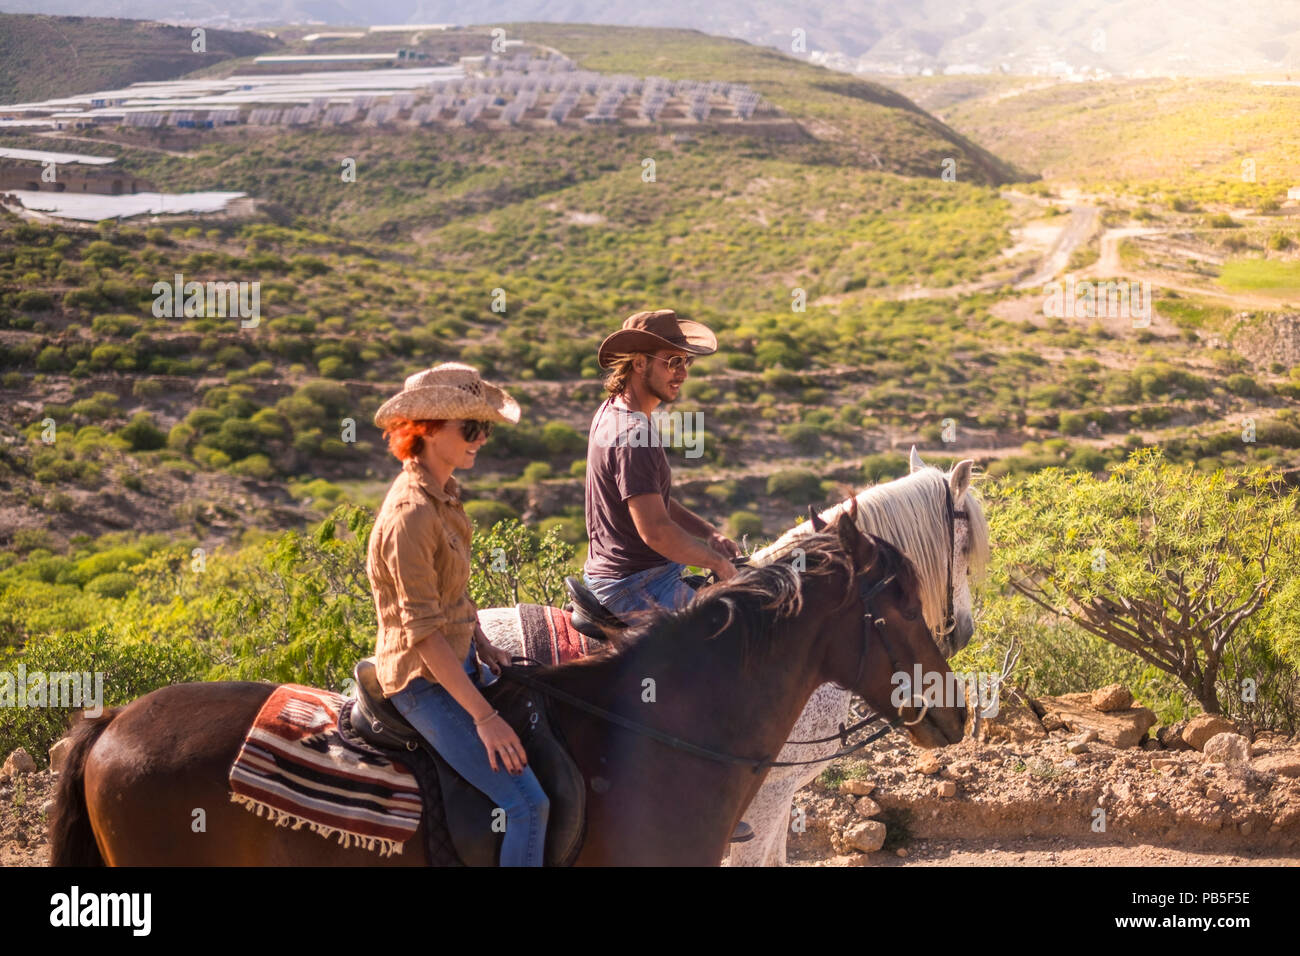 couple of rider man and woman with brown and white horses go and enjoy the outdoor leisure activity in excursion traveling the mountains. modern cowbo - Stock Image